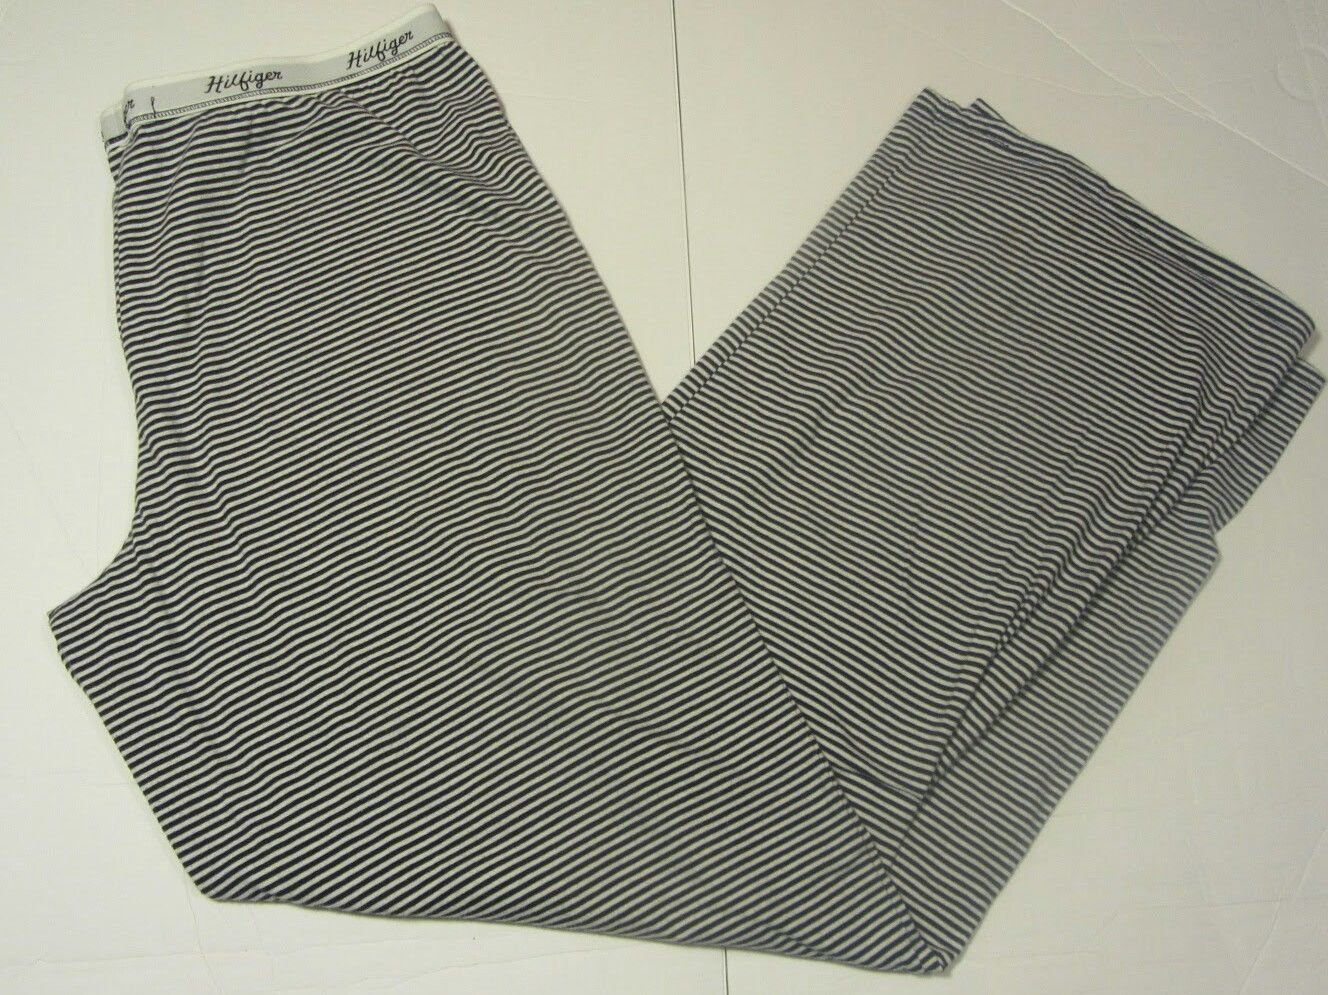 Womens Tommy Hilfiger Navy/White Striped Sleep PJ Pants Size L